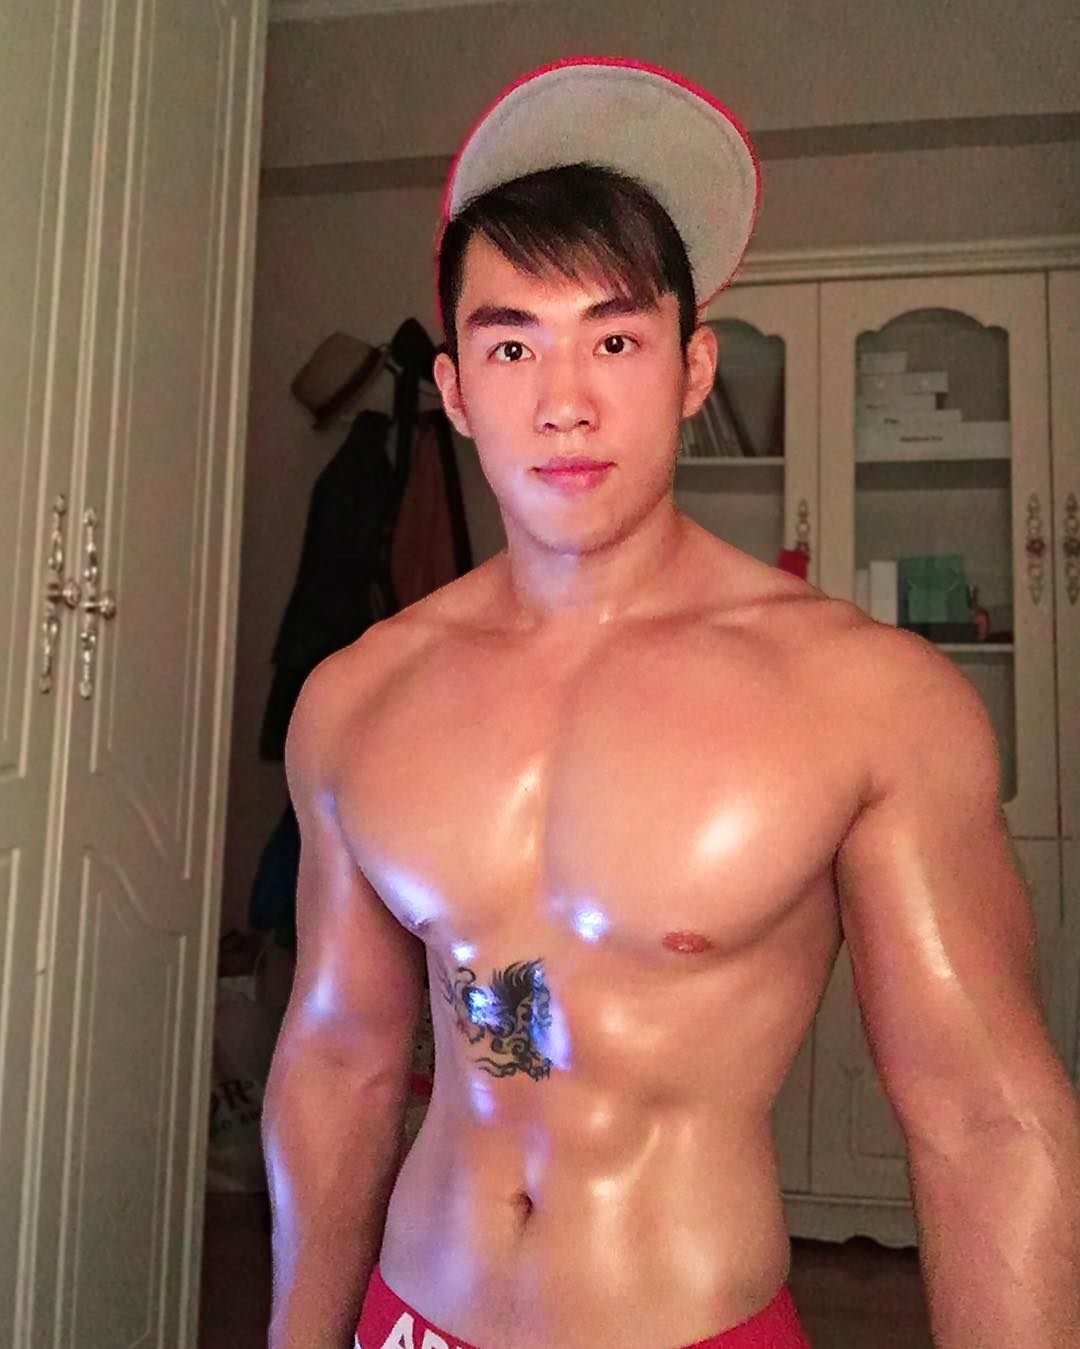 white-party-bangkok-asia-biggest-new-year-gay-party-hot-asian-guys-asias-largest-gay-travel-guide-16